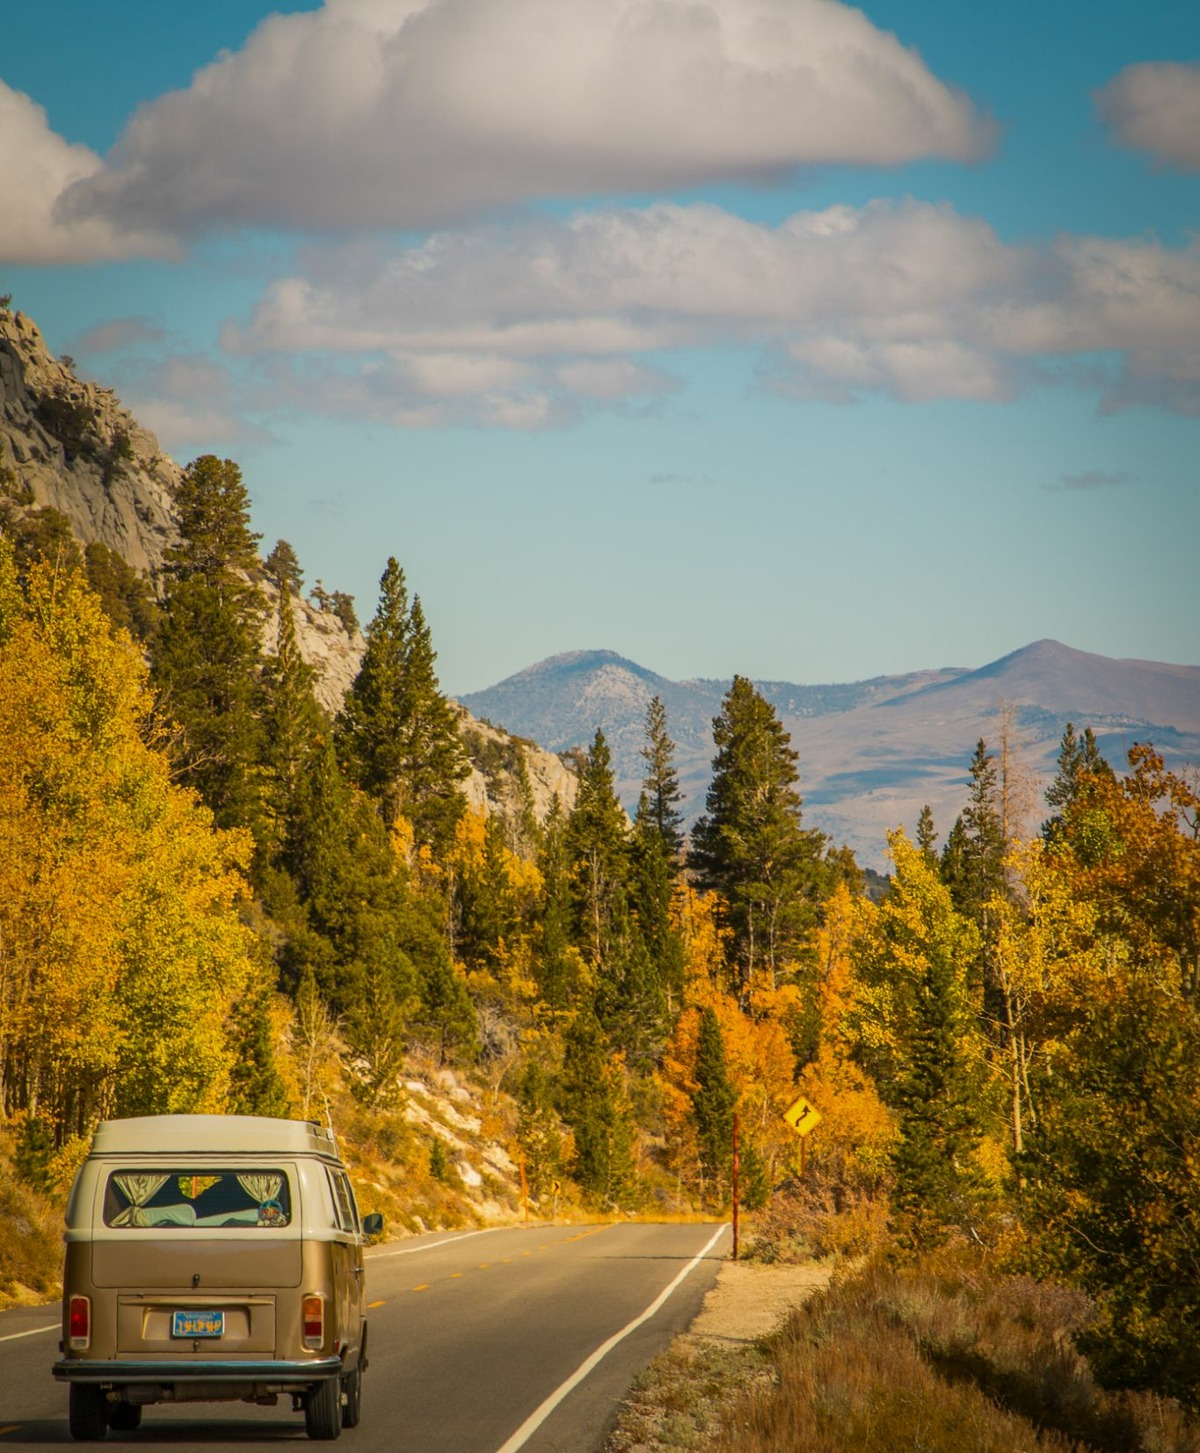 Peak fall foliage conditions are viewable along Rock Creek Road and most of Mono County.